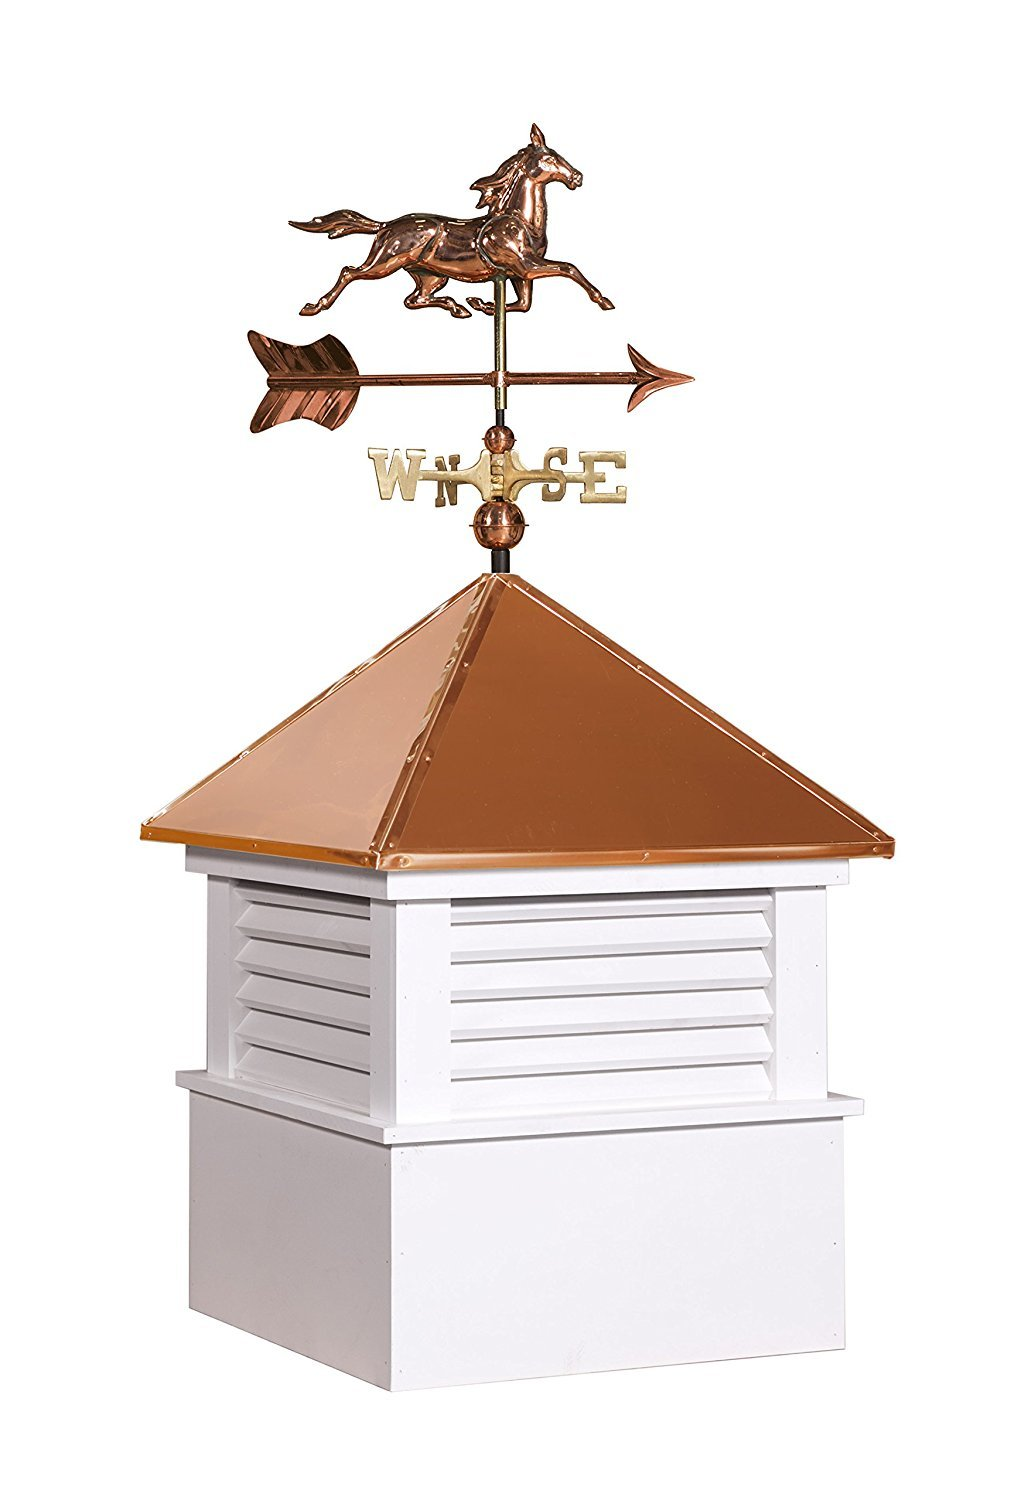 East Coast Weathervanes and Cupolas Vinyl Douglas Cupola With Horse Weathervane (Vinyl, 21 in square x 43 in tall)